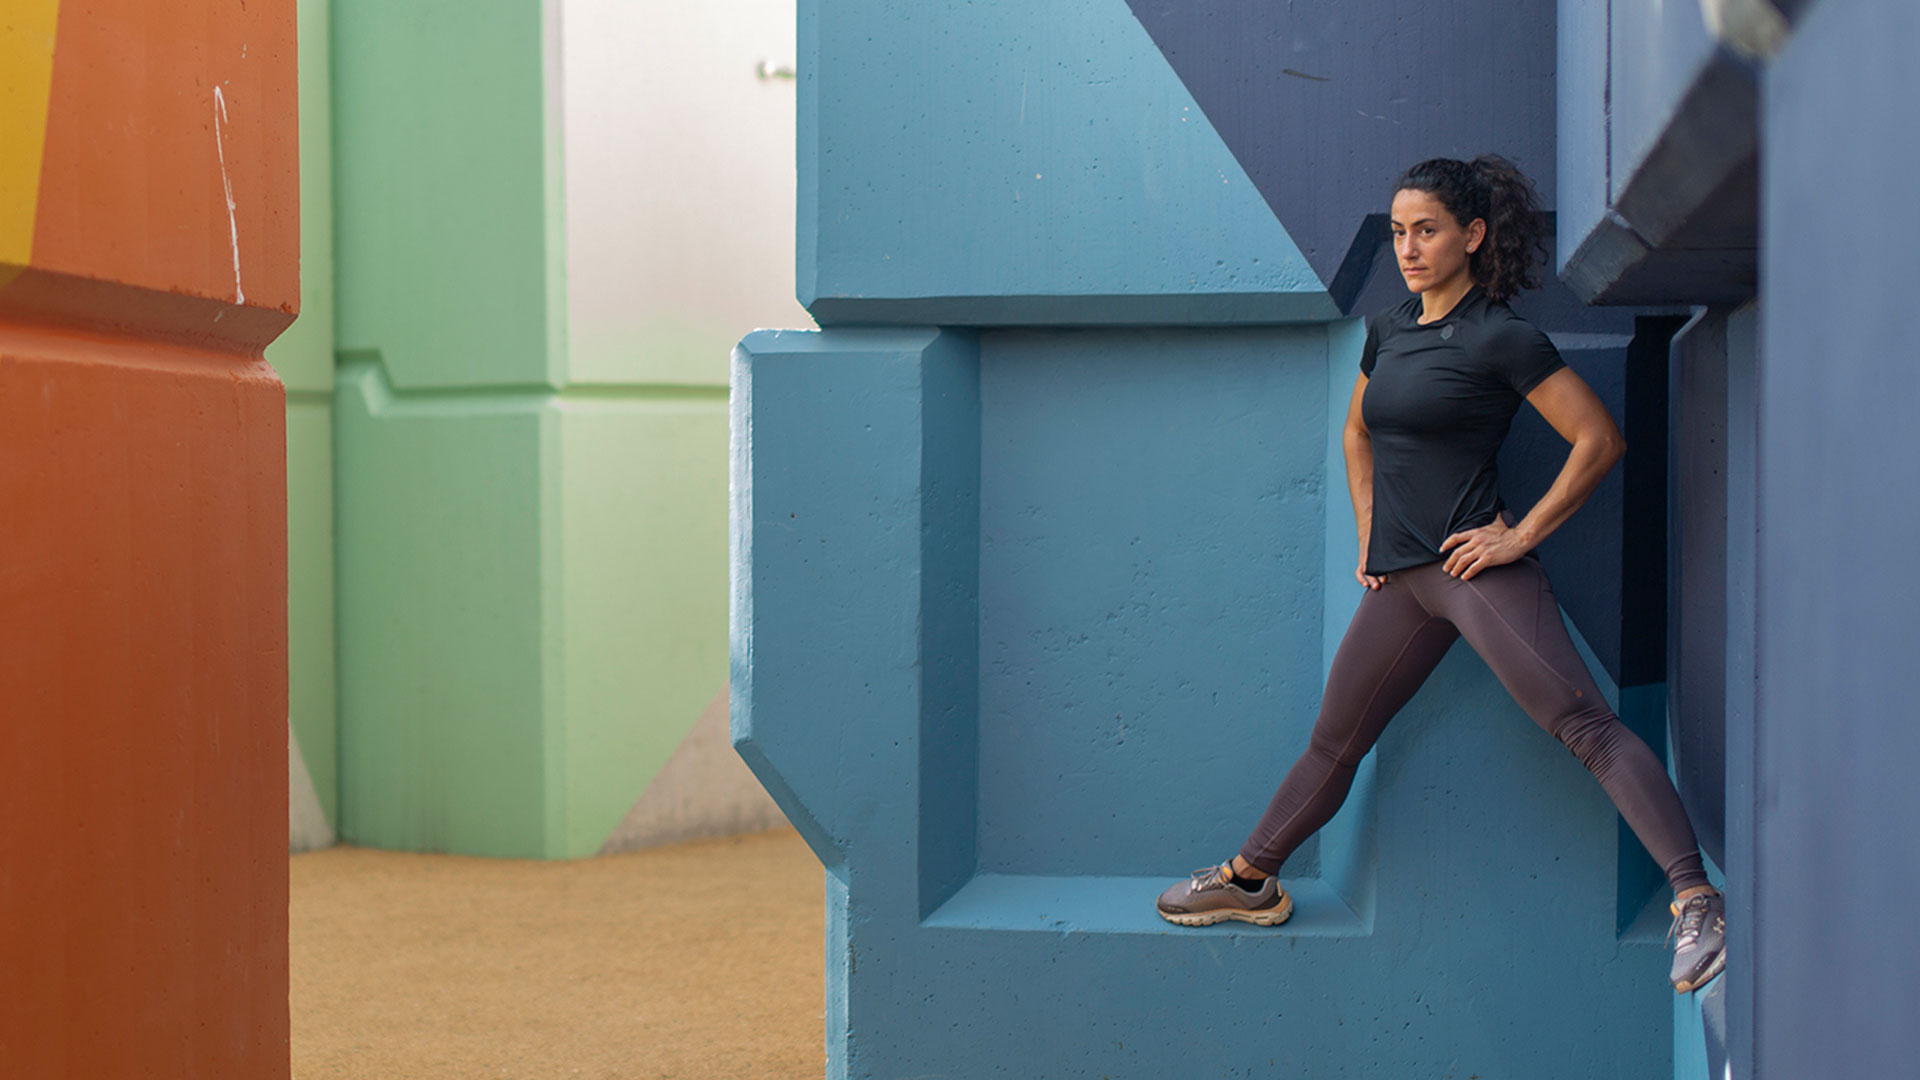 Samia Kallidis in tight workout clothes on a colorful geometric sculpture